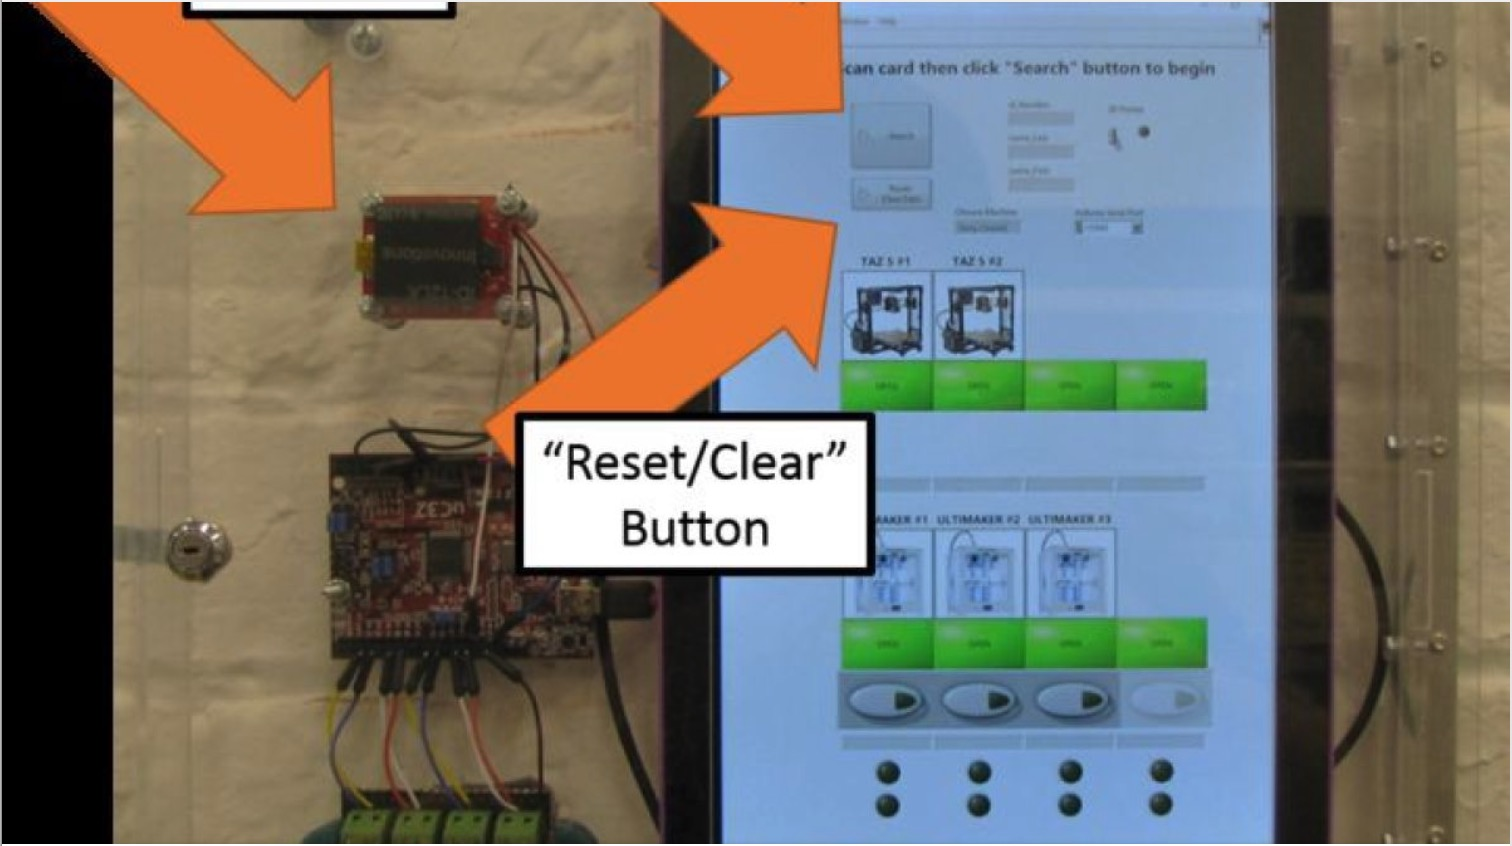 open-source-rfid-system